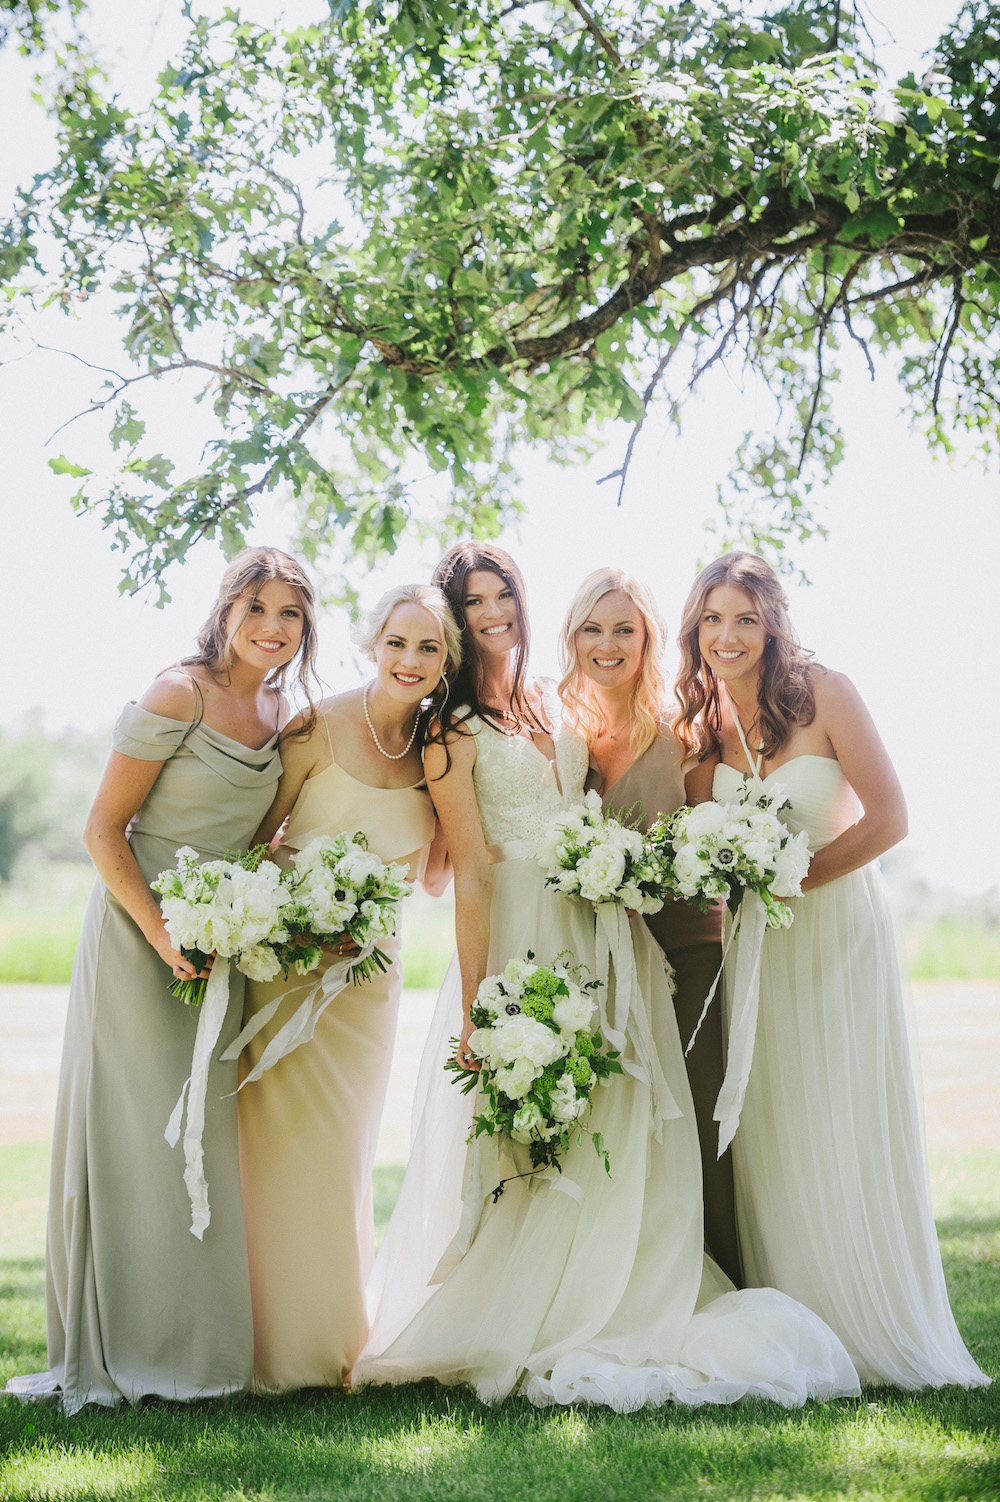 Winnipeg wedding florist katie dans vineyard inspired wedding neutral bridesmaid dresses wedding ideas ombrellifo Choice Image